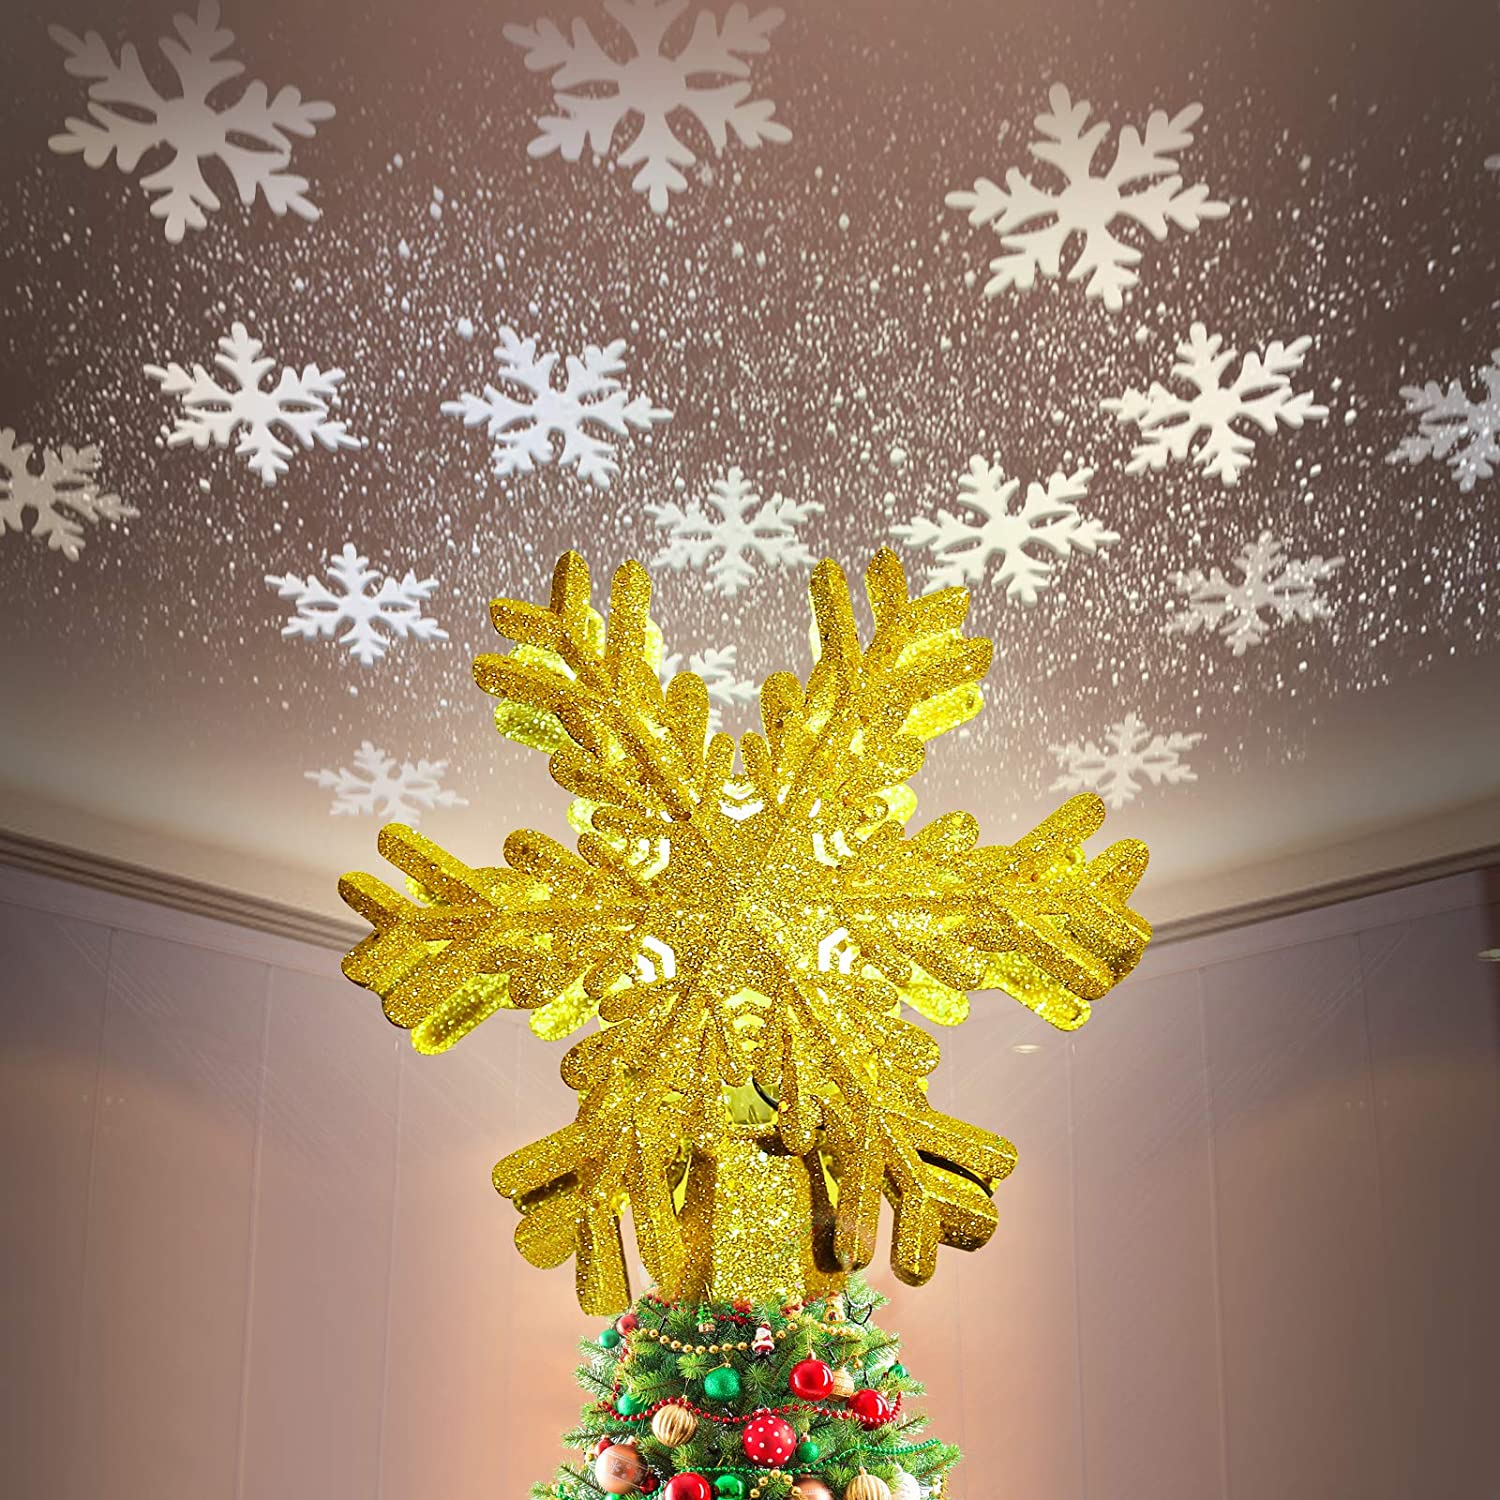 Tenflyer Snowflake Christmas Tree Topper Lighted with LED Rotating Magic Snow Projector, 3D Hollow Glitter Lamp Decor for Xmas Tree Decorations Festival Night (Gold)